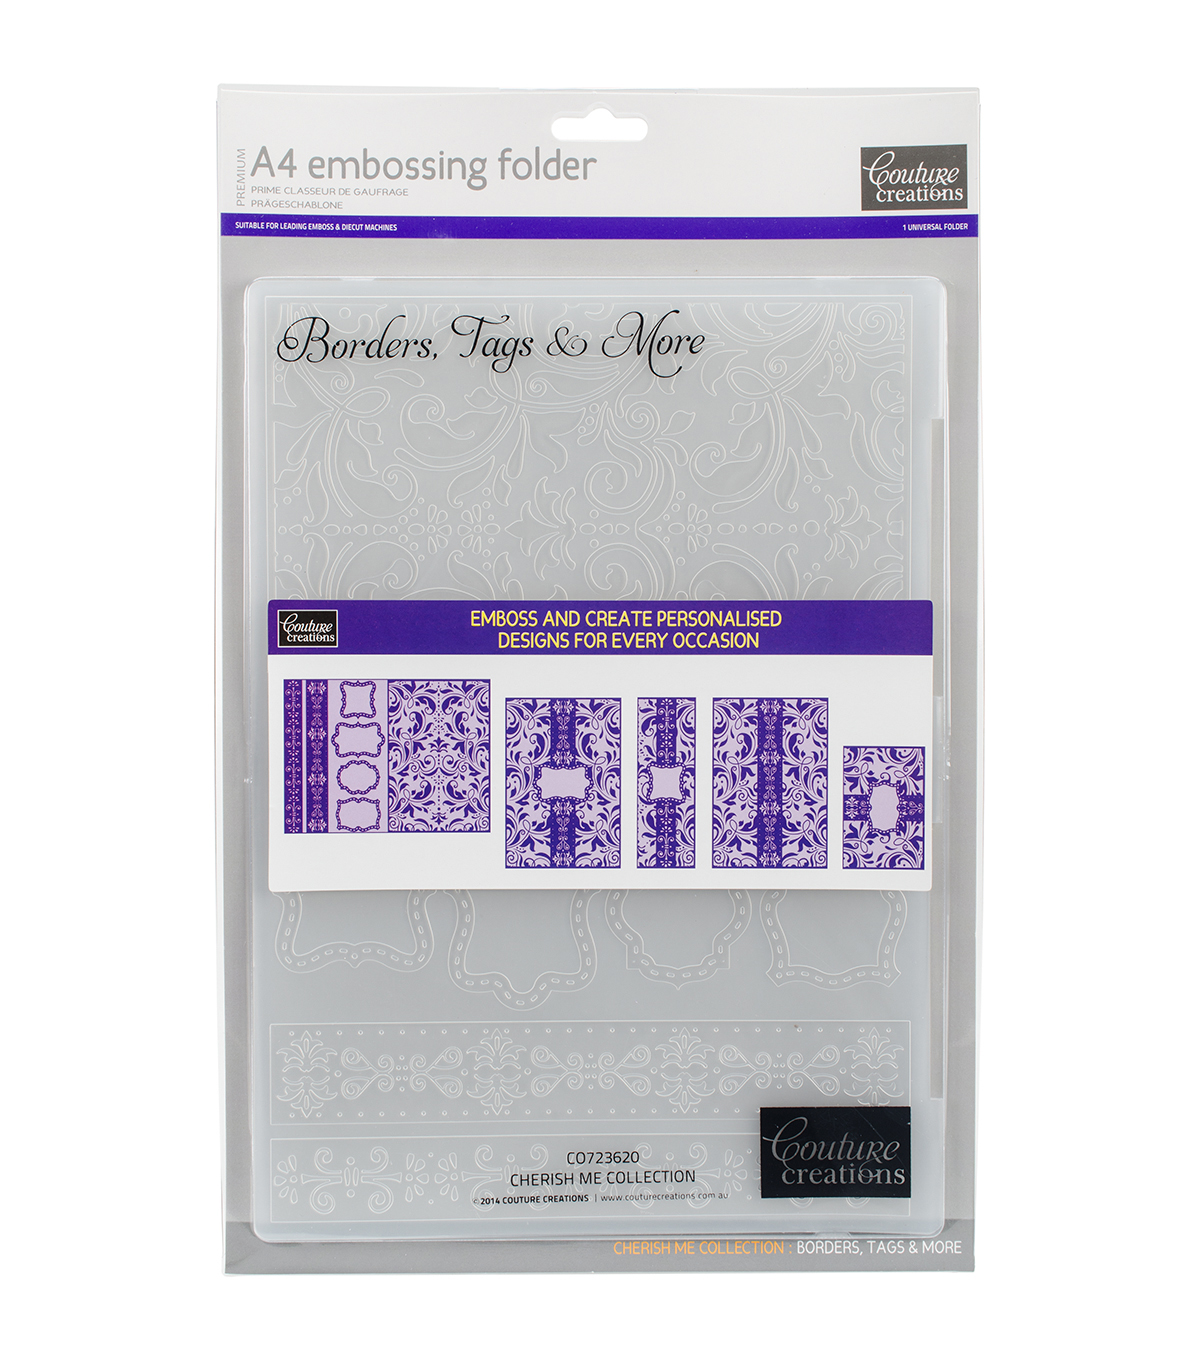 Couture Creations A4 Embossing Folder-Borders, Tags & More